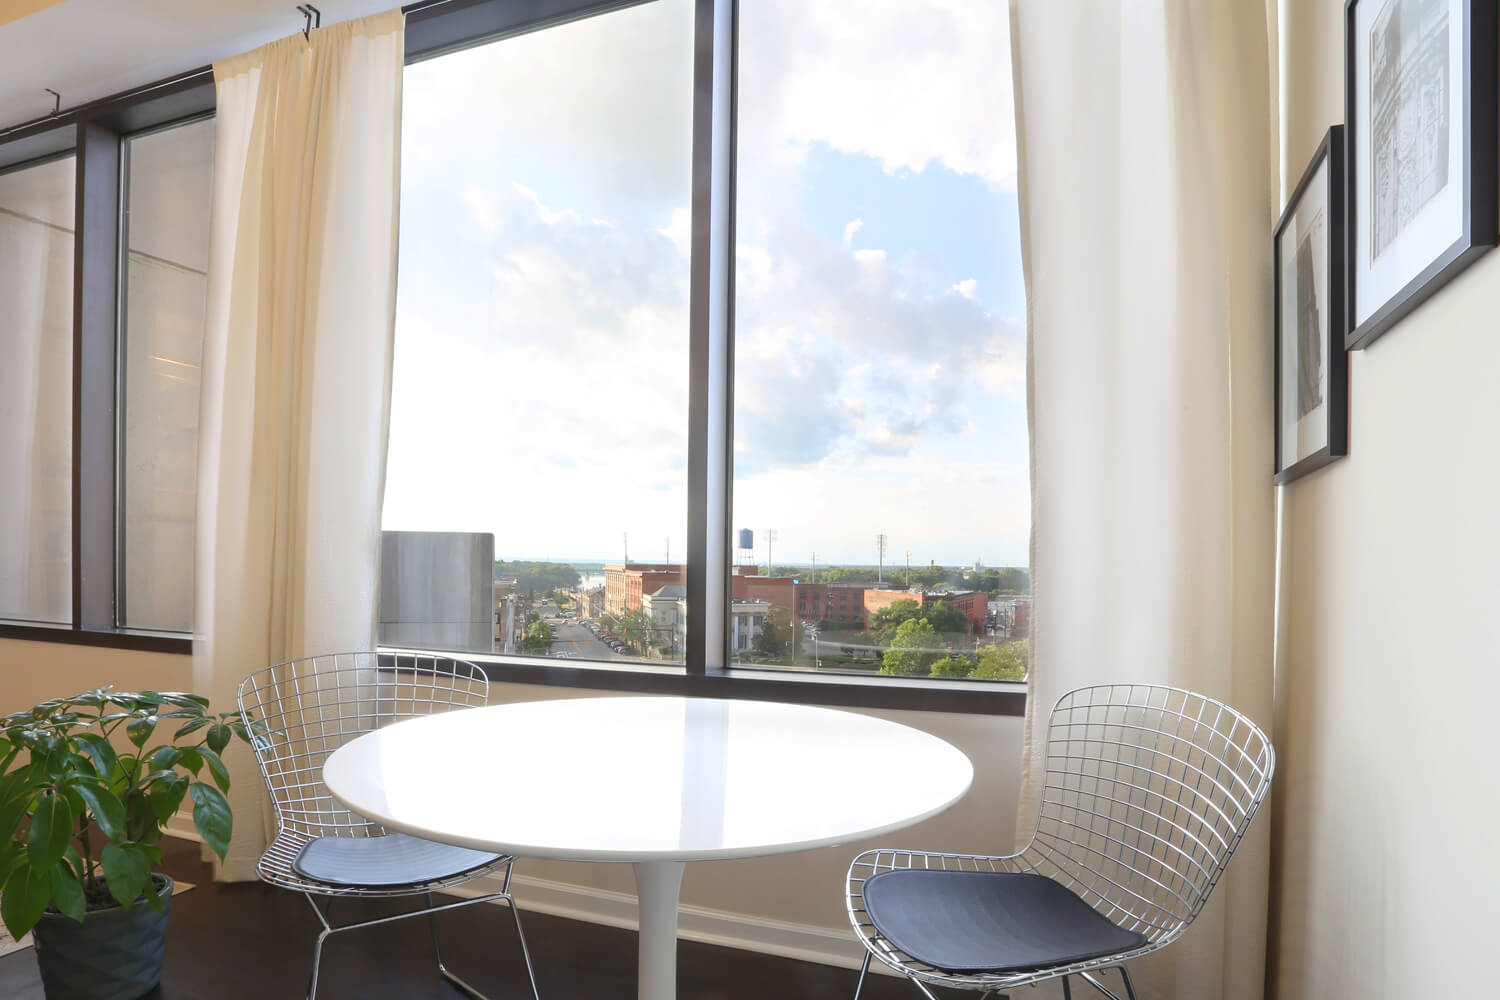 The 40 Four Building Designed by Foshee Architecture – Apartment Dining Room